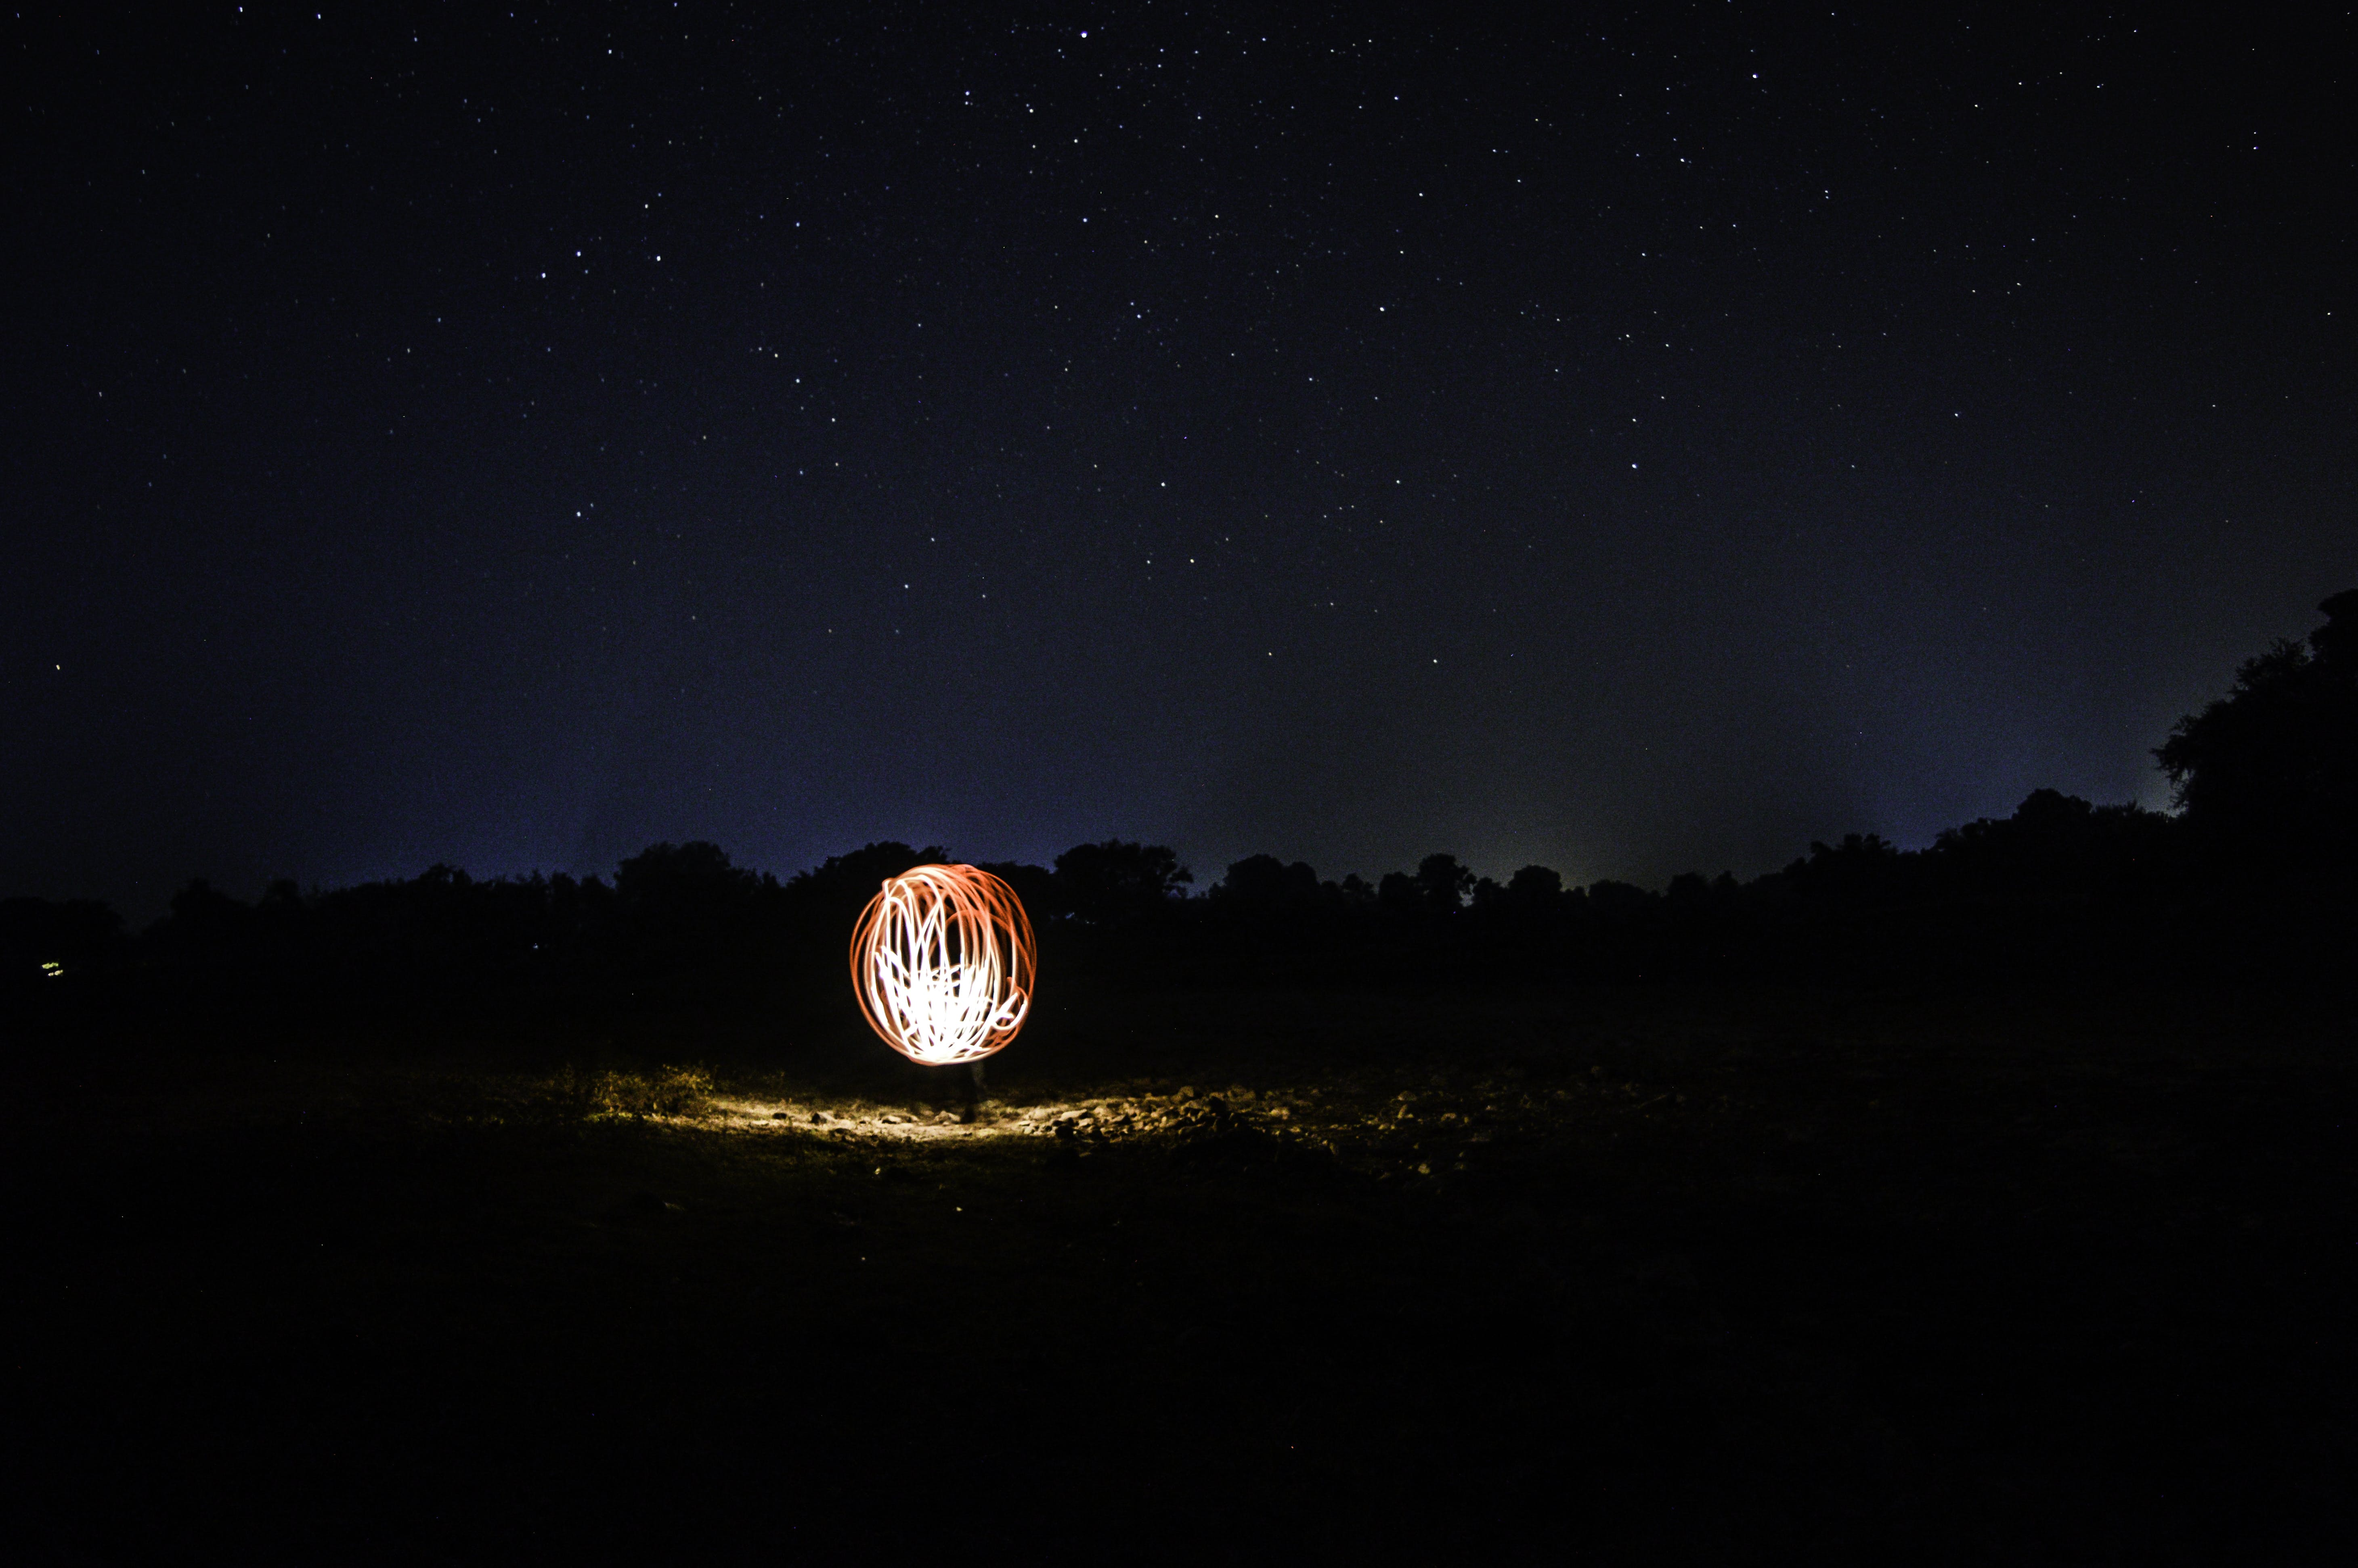 Free stock photo of astrophotography, Globe Under The Sky, long exposure, night lights